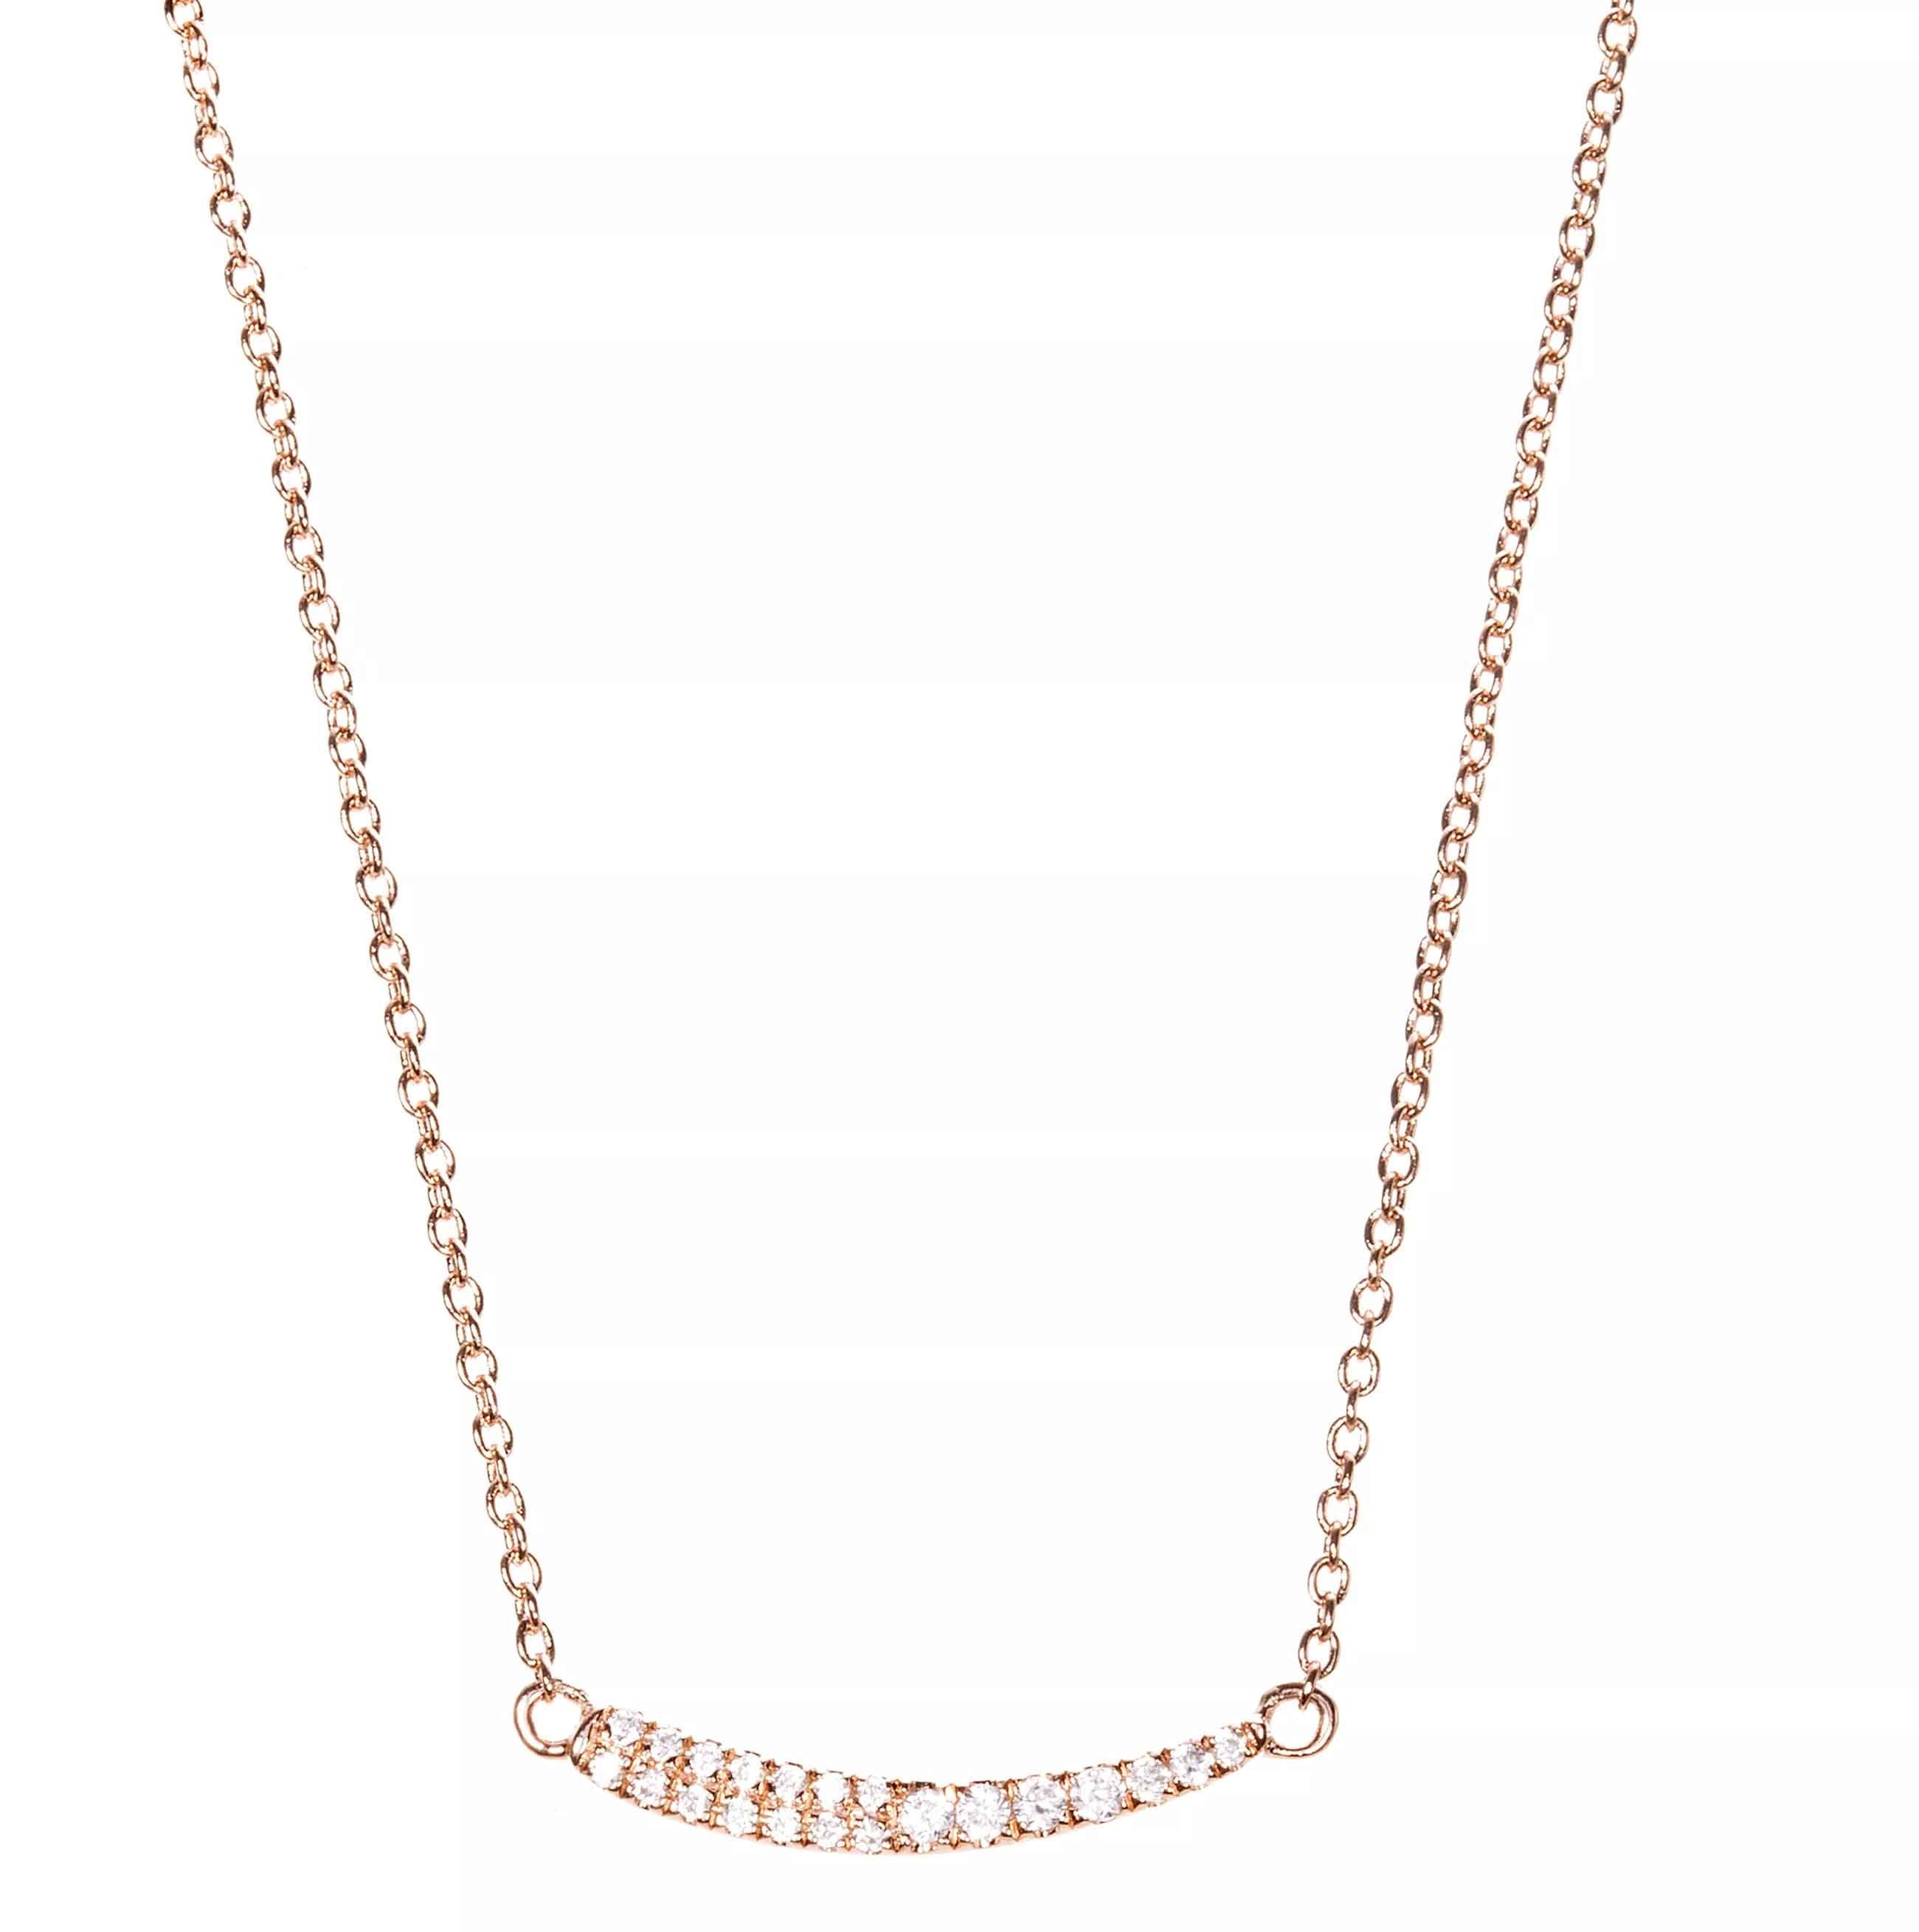 Tiny Curve necklace in rose vermeil